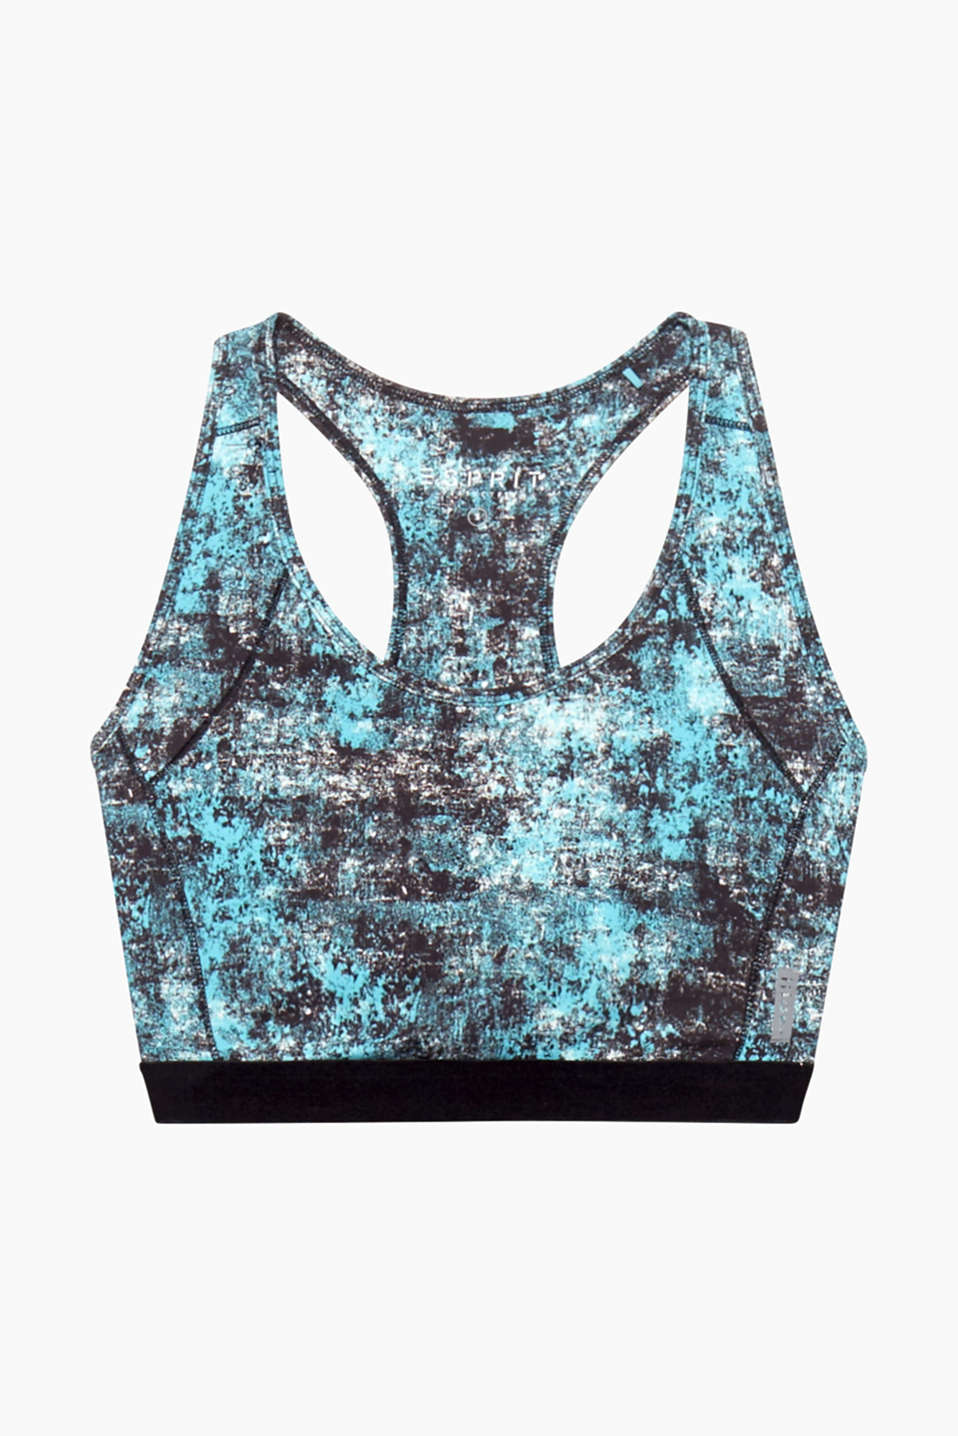 This light support bra with a graphic all-over print and a racer back is your perfect active top!